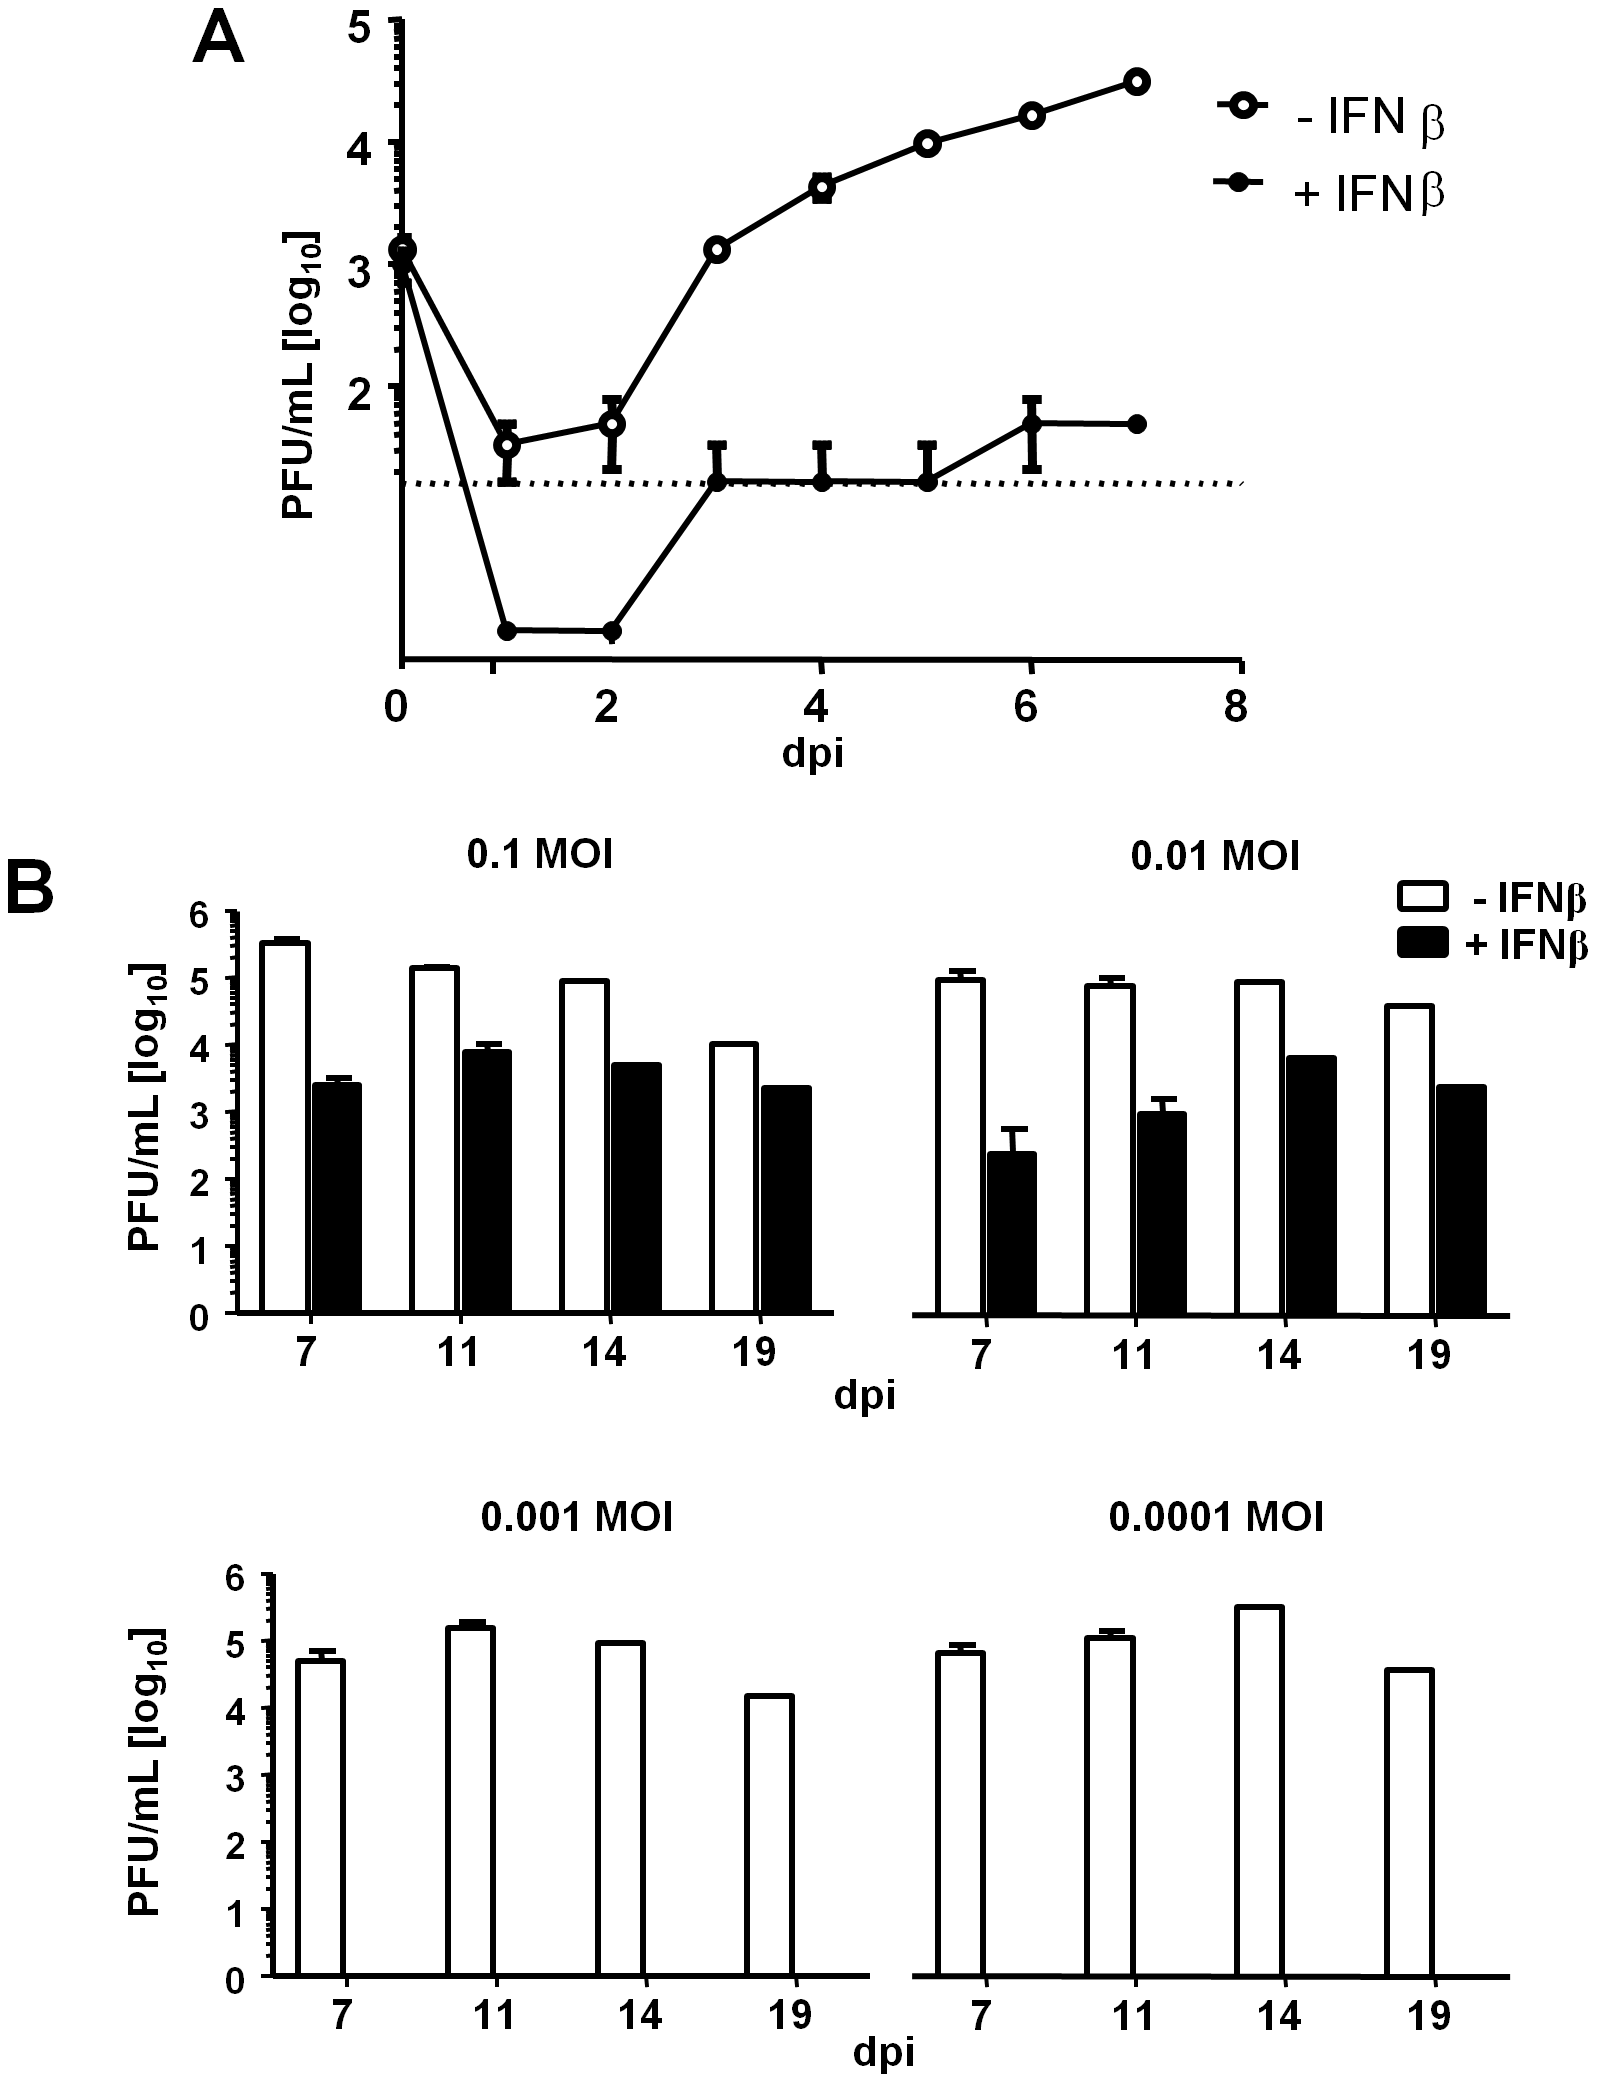 IFNβ restricts MCMV replication in LSECs.